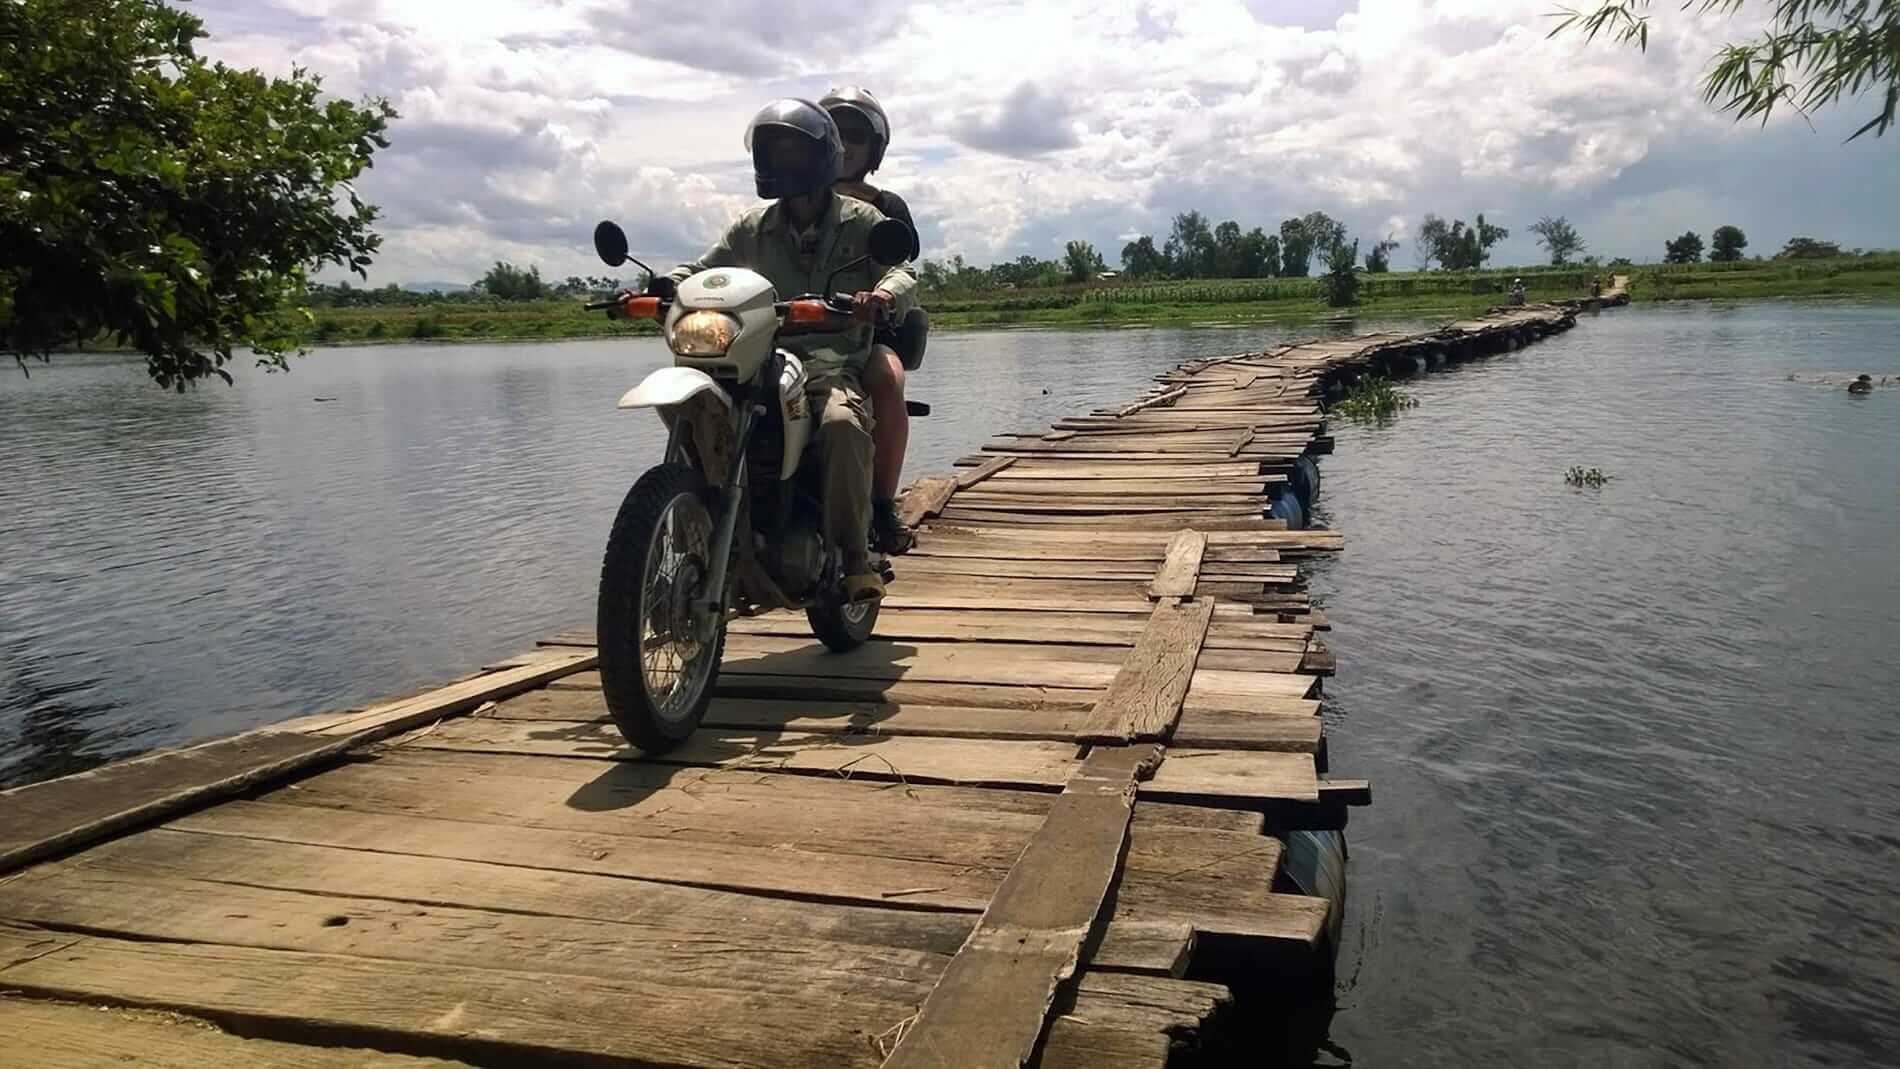 riding pillion on a temporary floating bridge